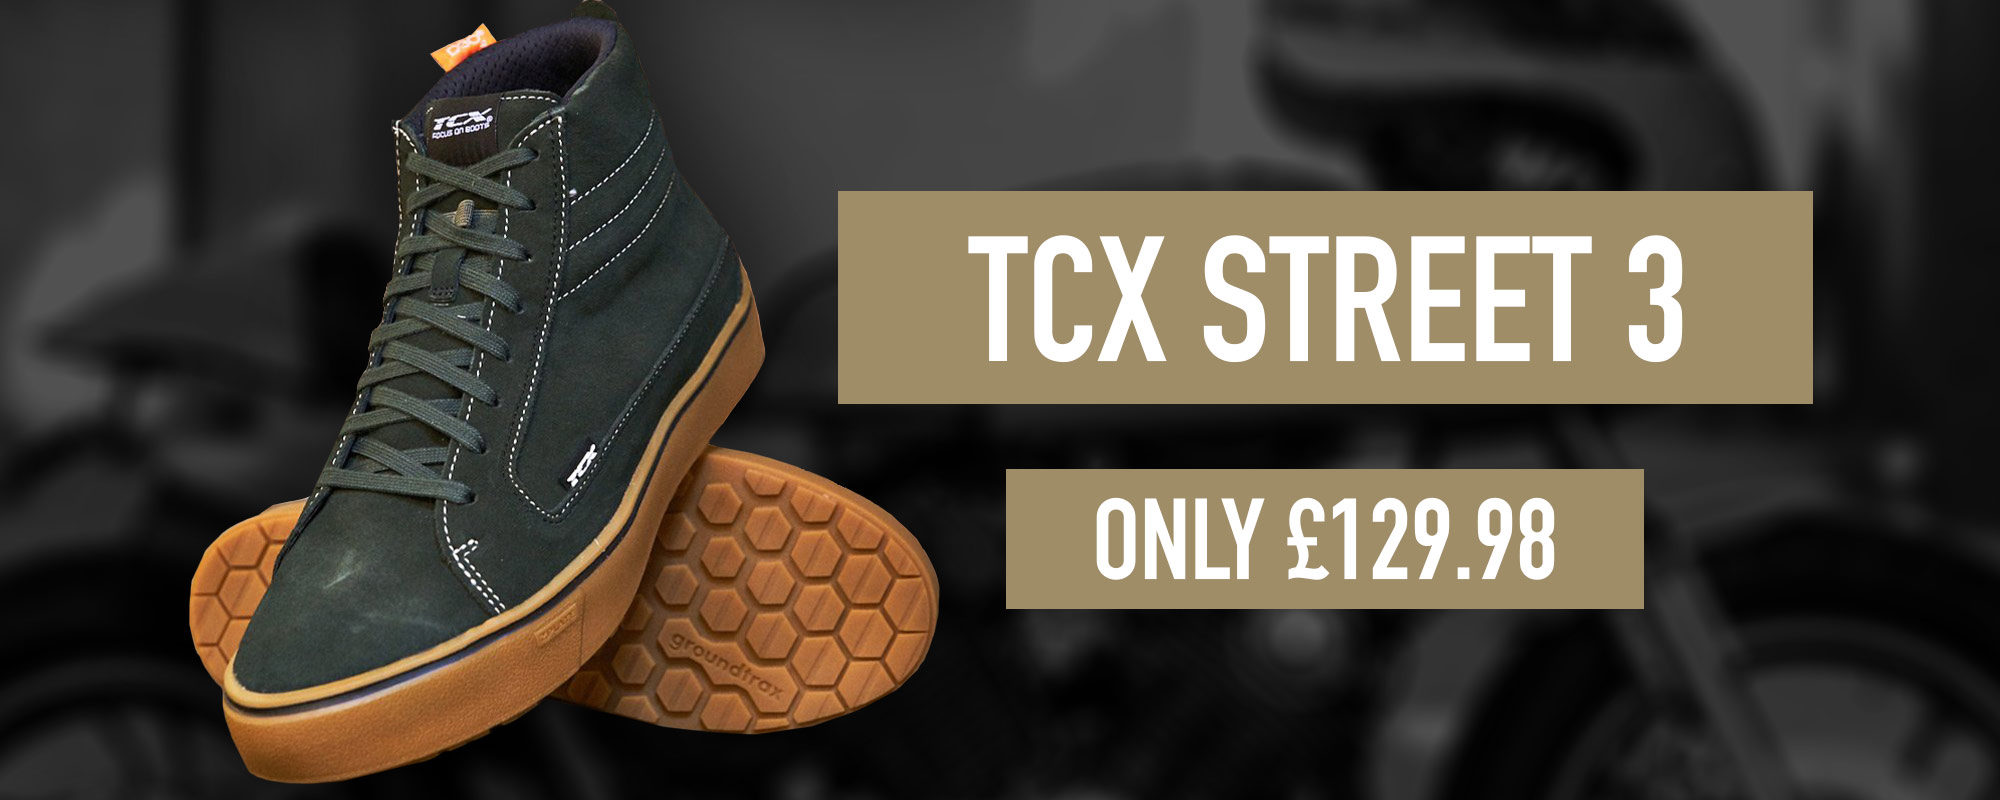 New TCX Street 3 Motorcycle trainer boots